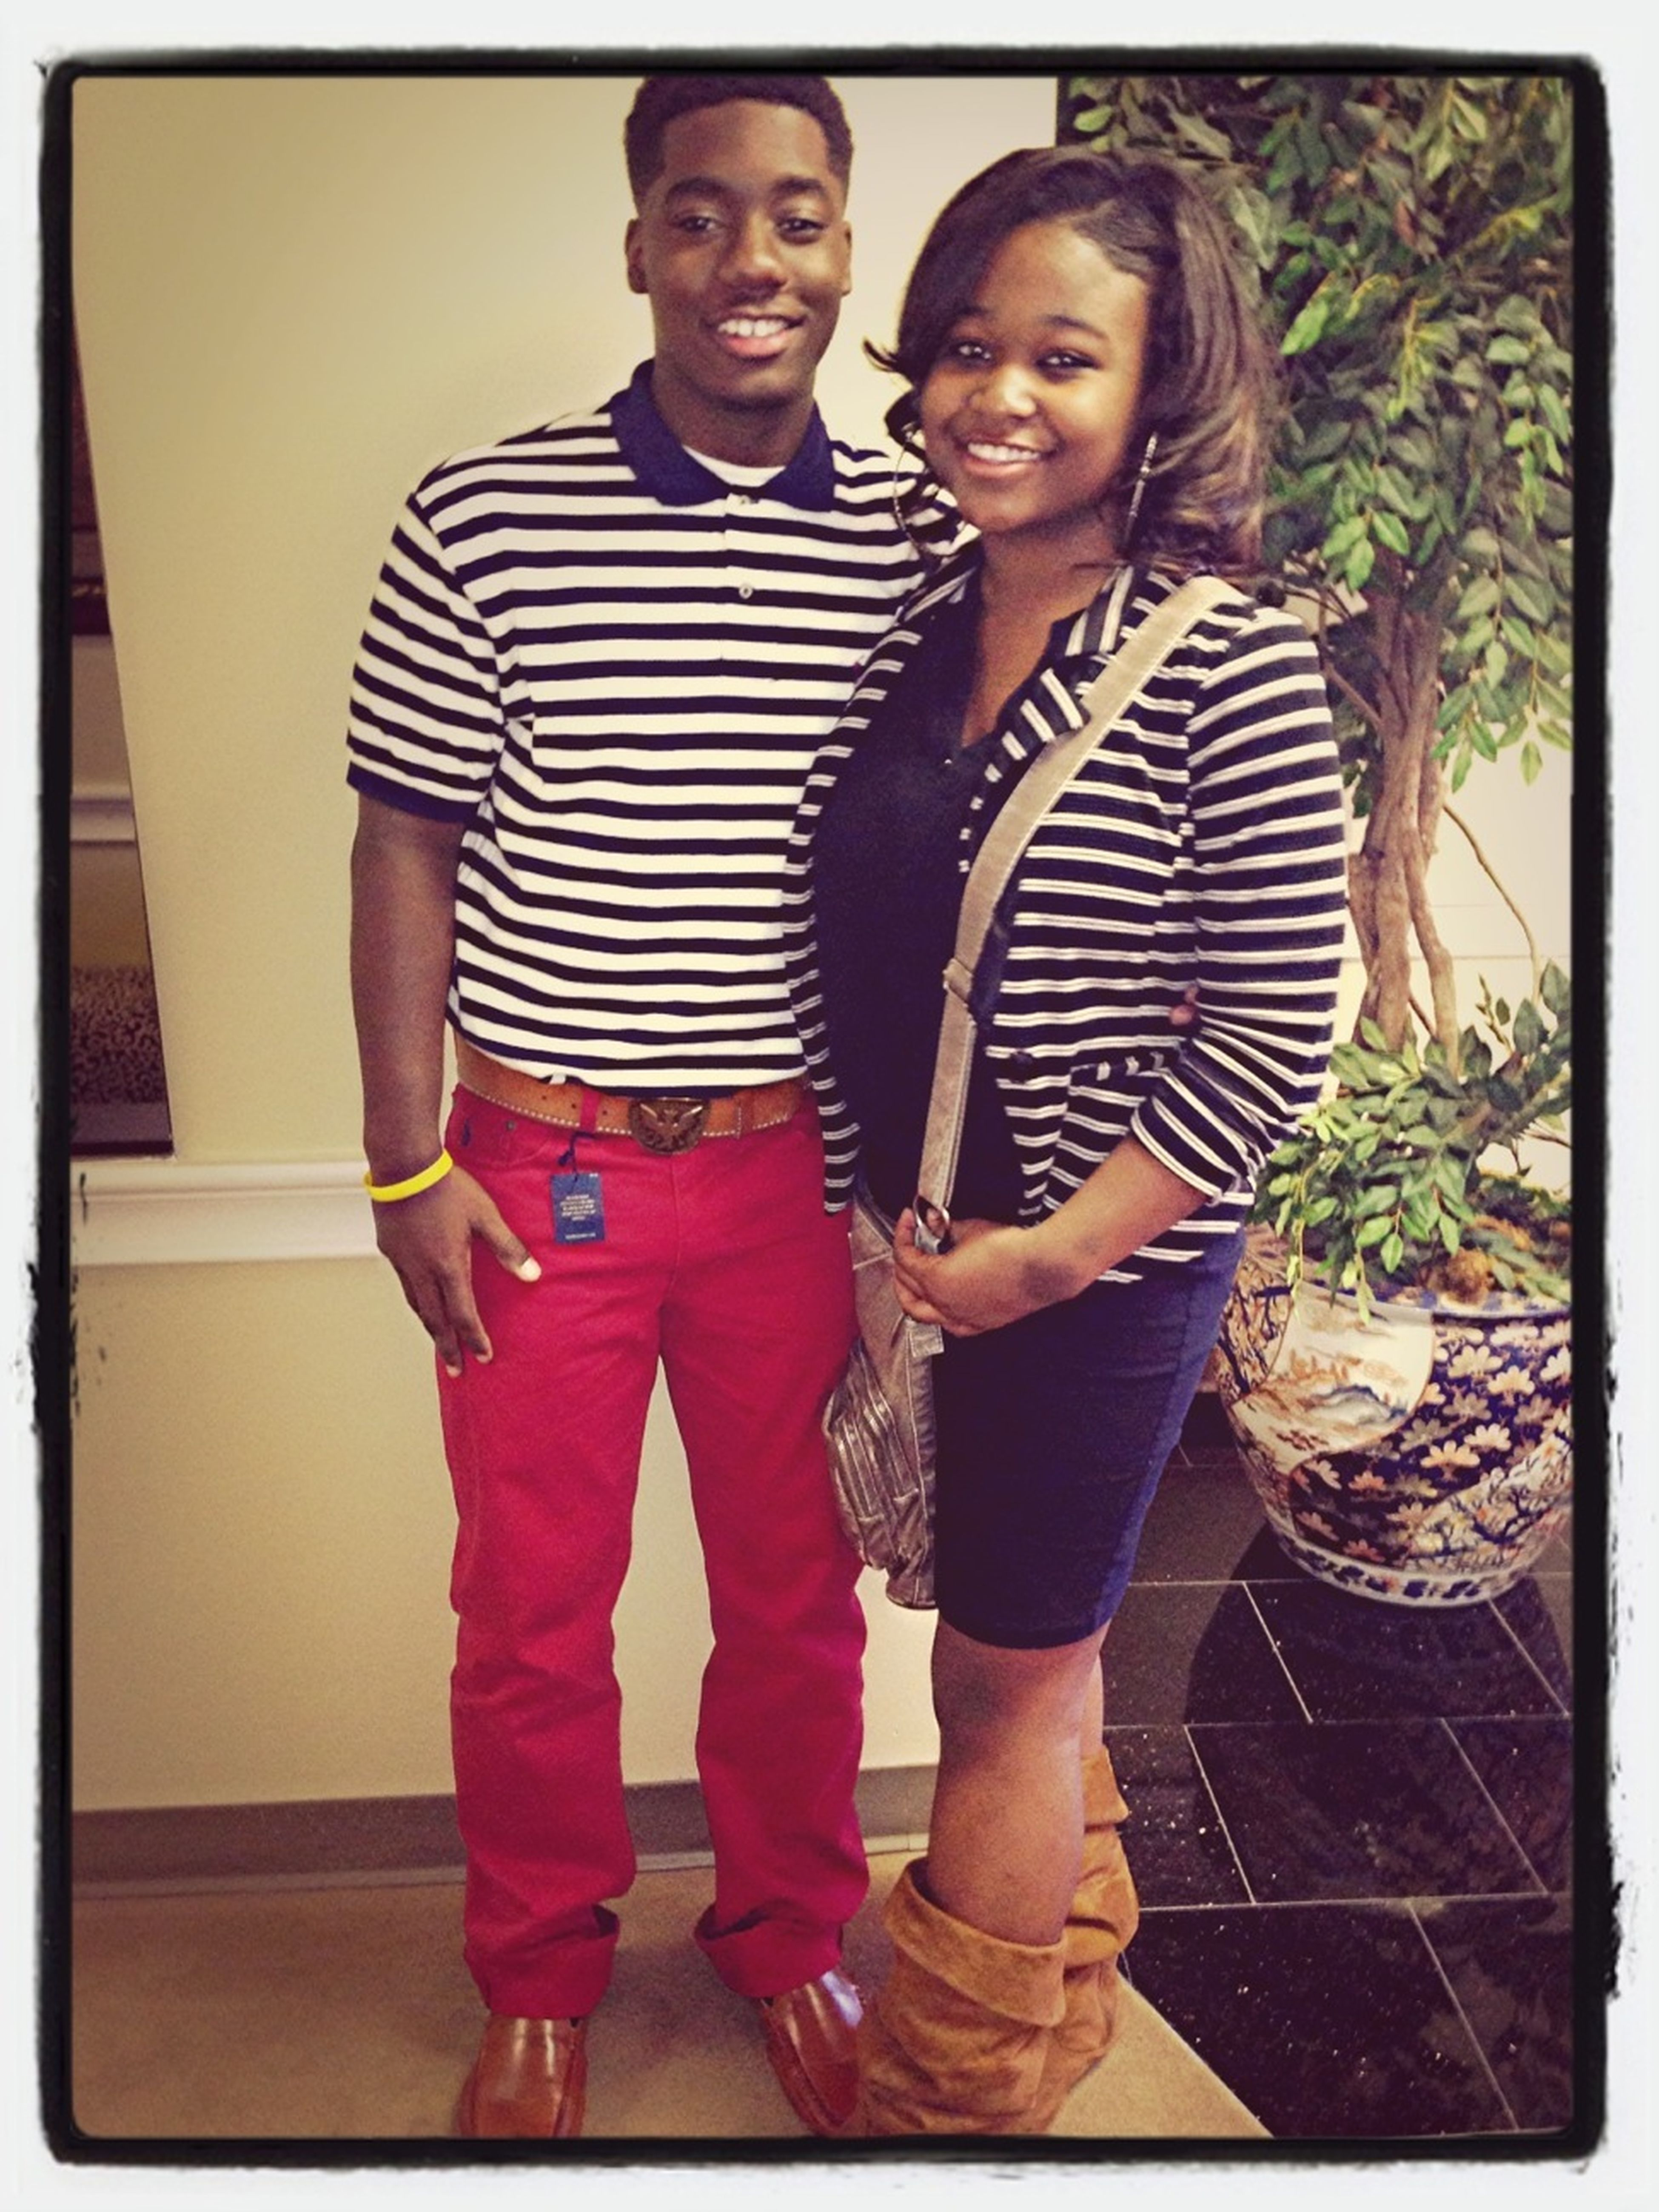 Me And This Gorgeous Lady At Church